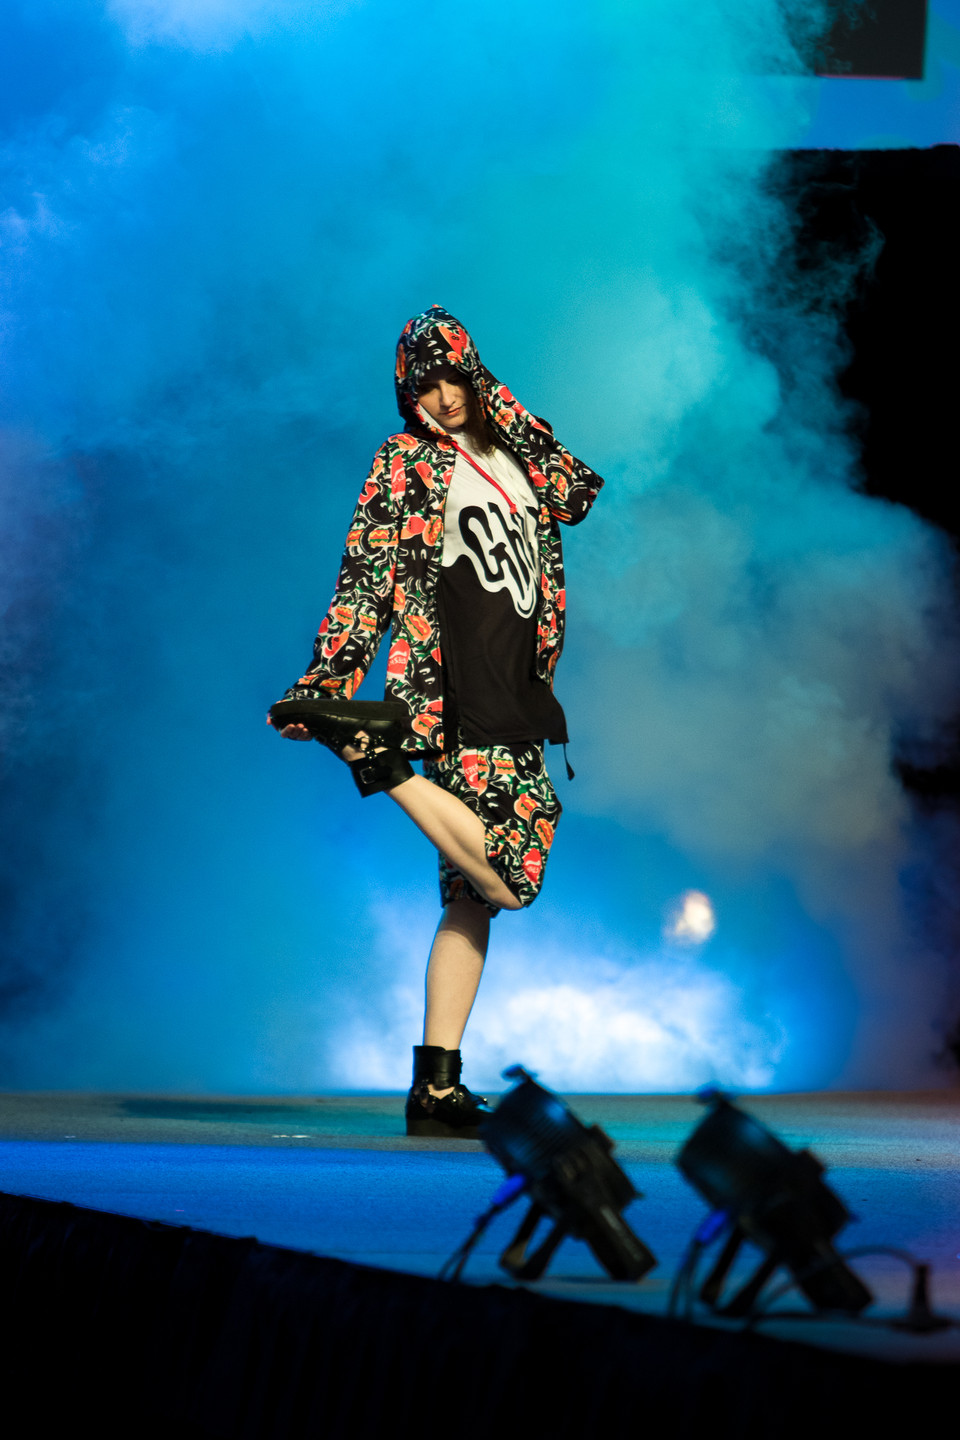 NUEZZZ x GHOST GiRL GOODS Collab Fashion Show at Tekko 2019 J Fashion Japanese Brand colorful